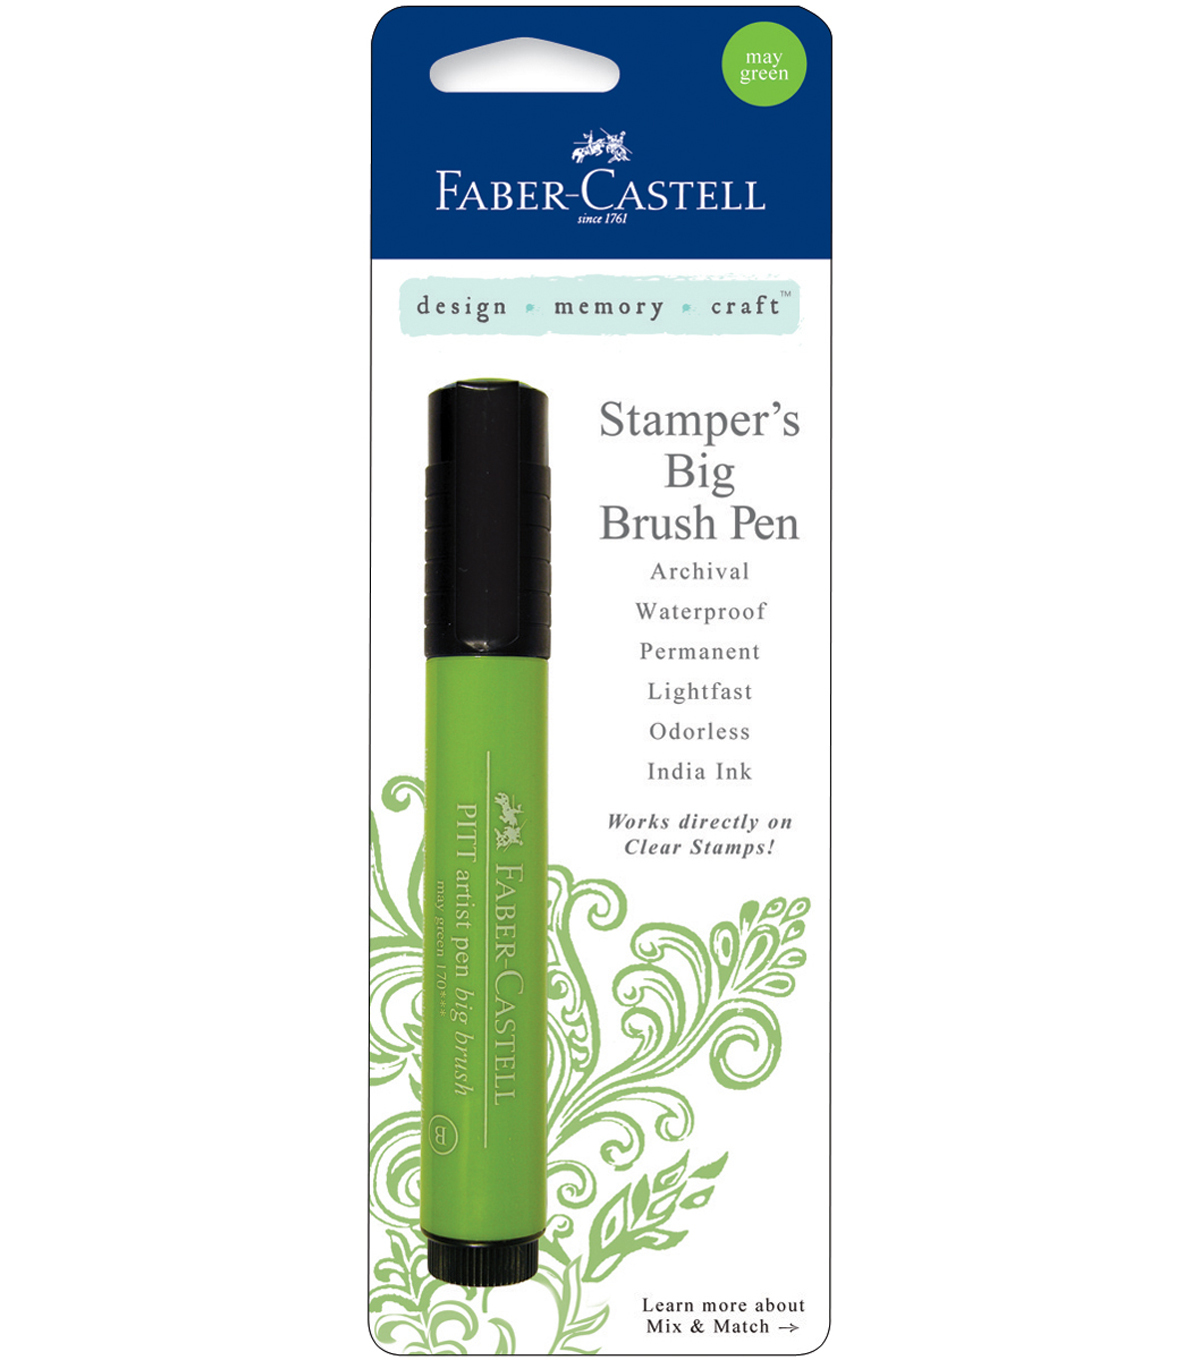 Faber-Castell design-memory-craft Mix & Match Stamper\u0027s Big Brush Pen , May Green